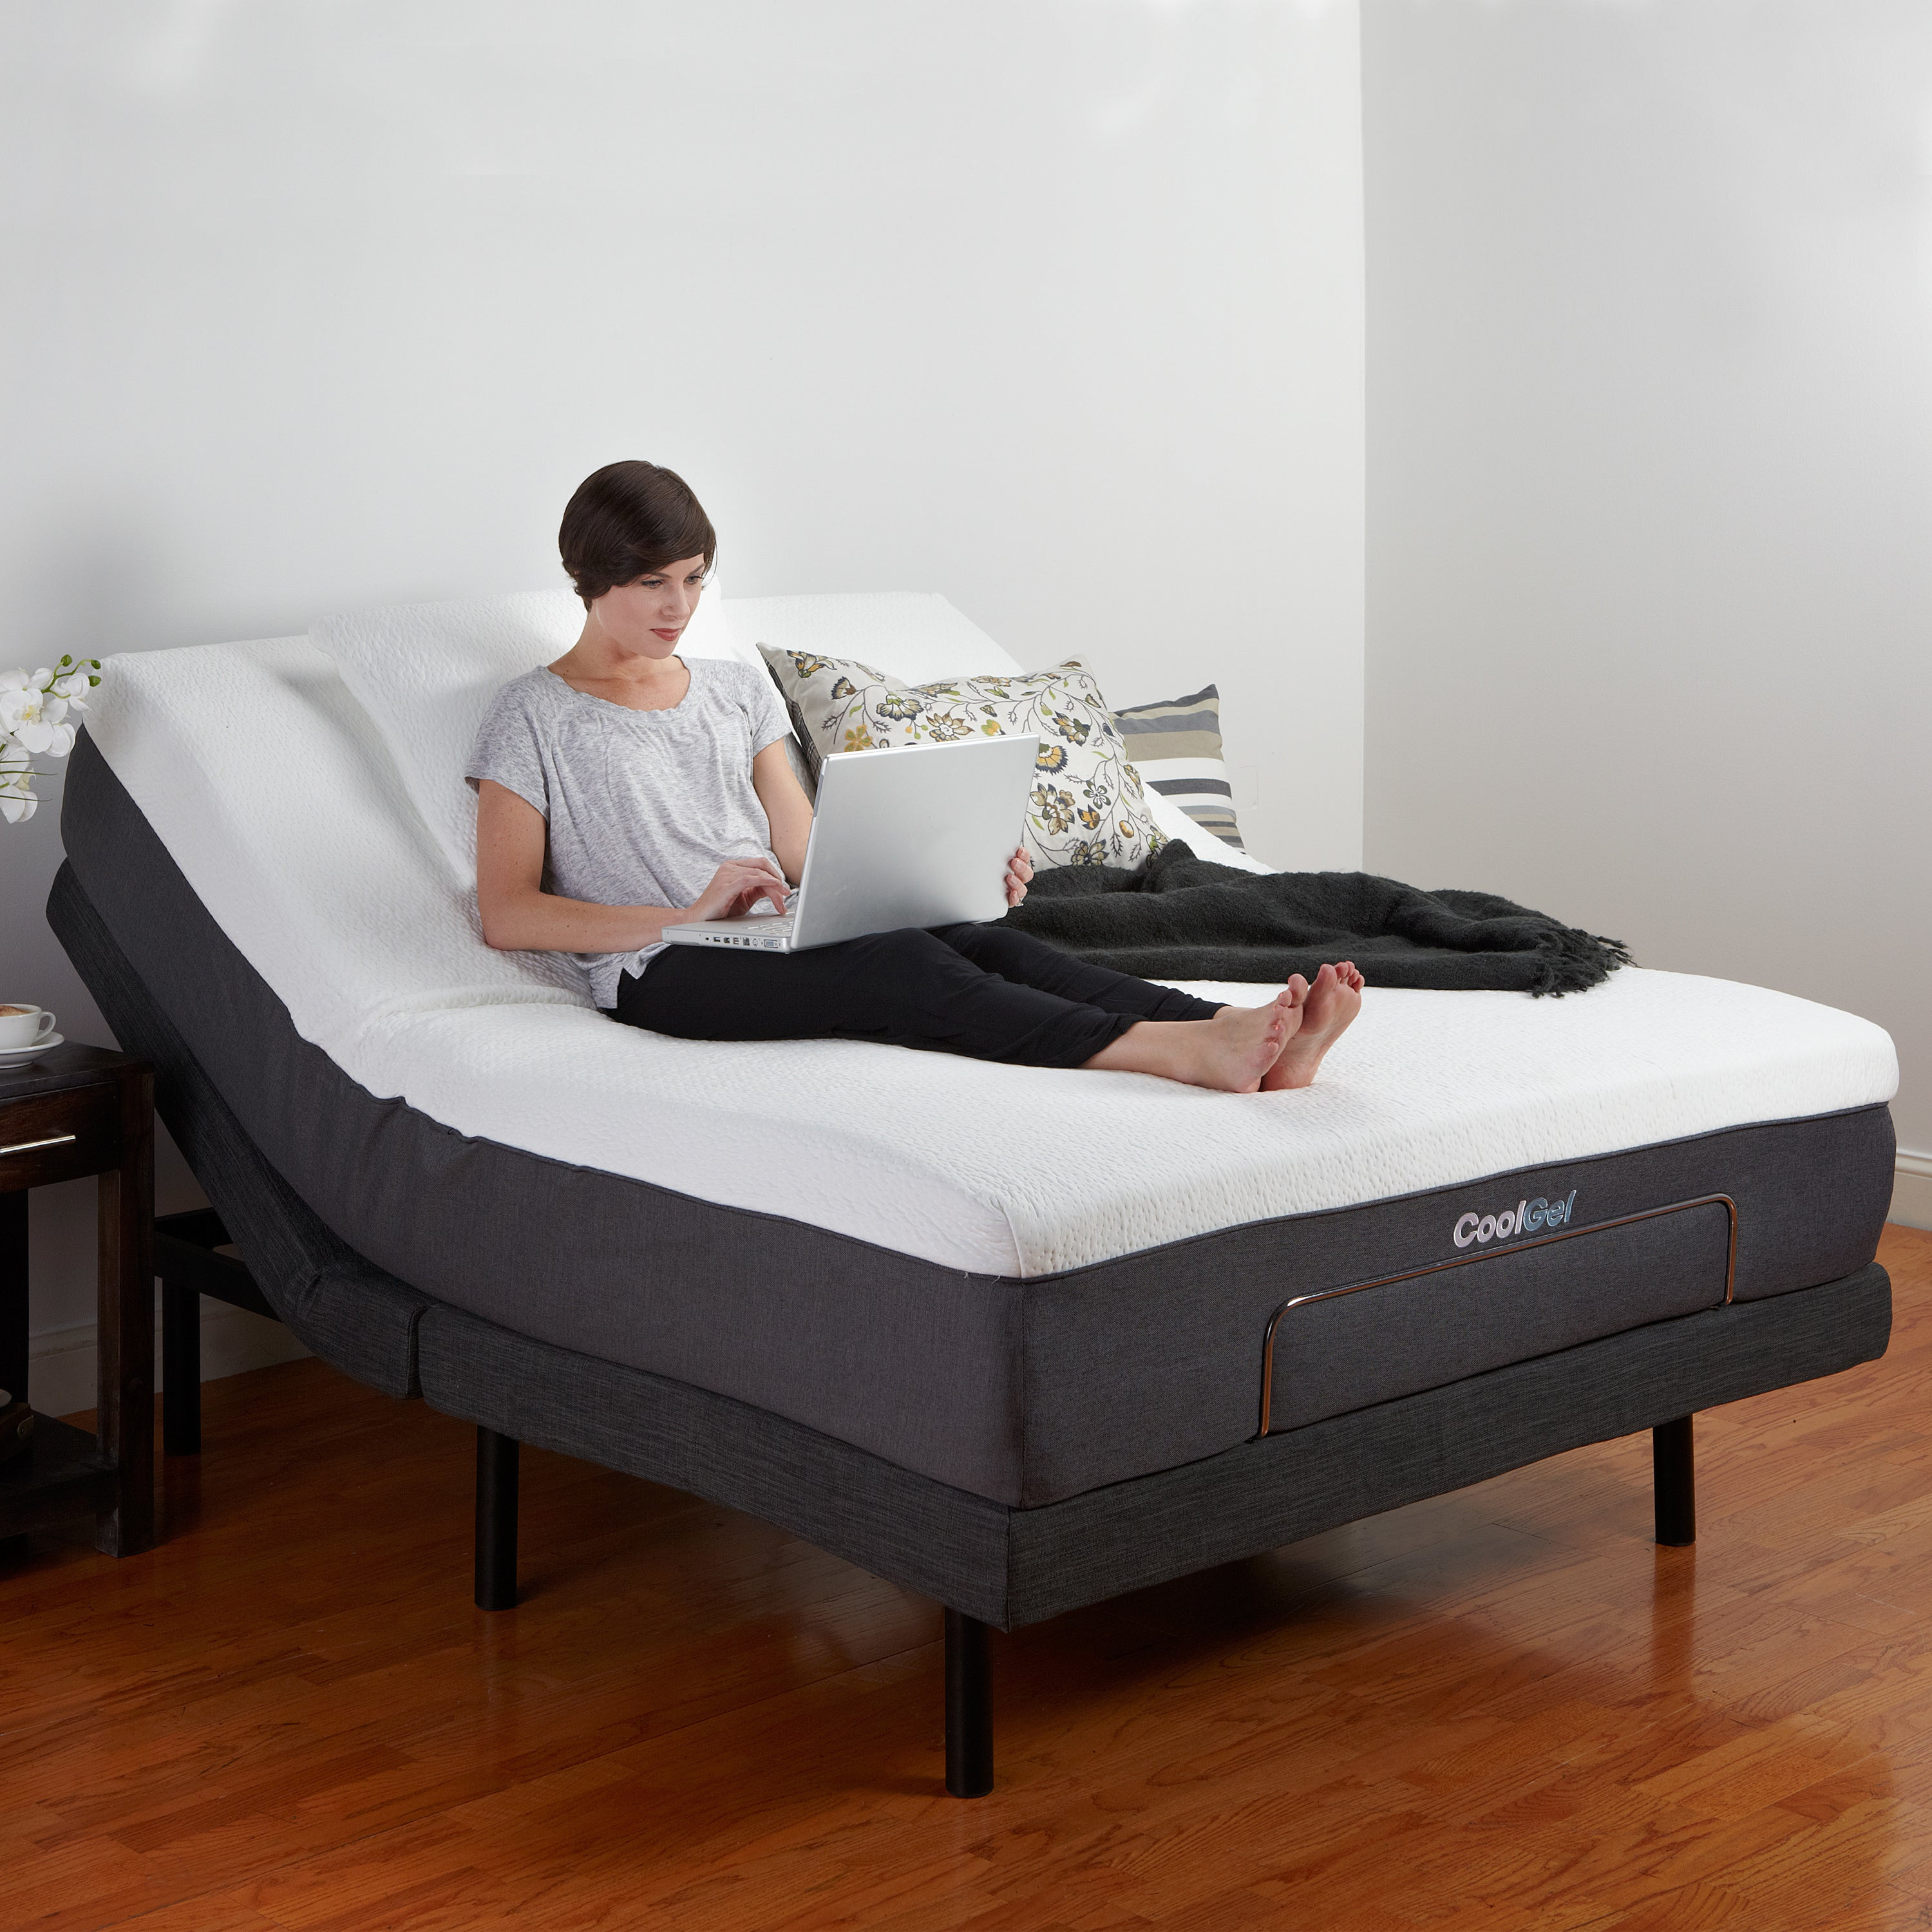 bed wood system linwood product beds dormio organic support base